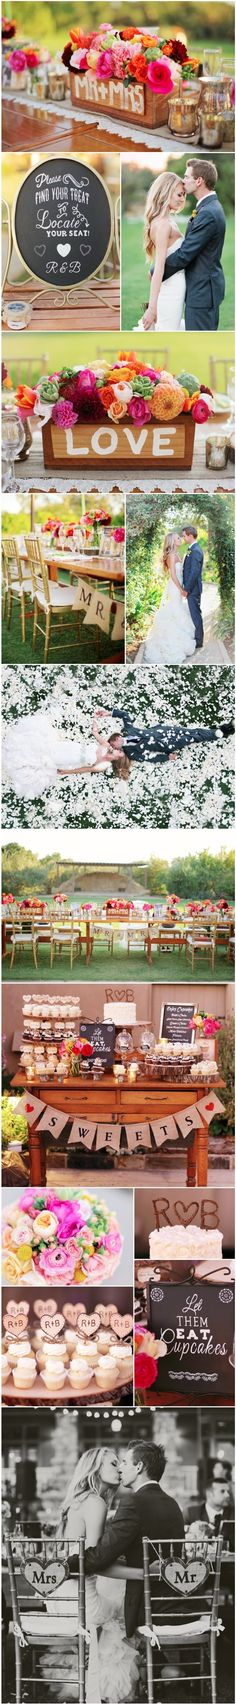 Oh my gosh!!! That middle picture looks like a Sarah Ruhl play! And I loveeee itttt